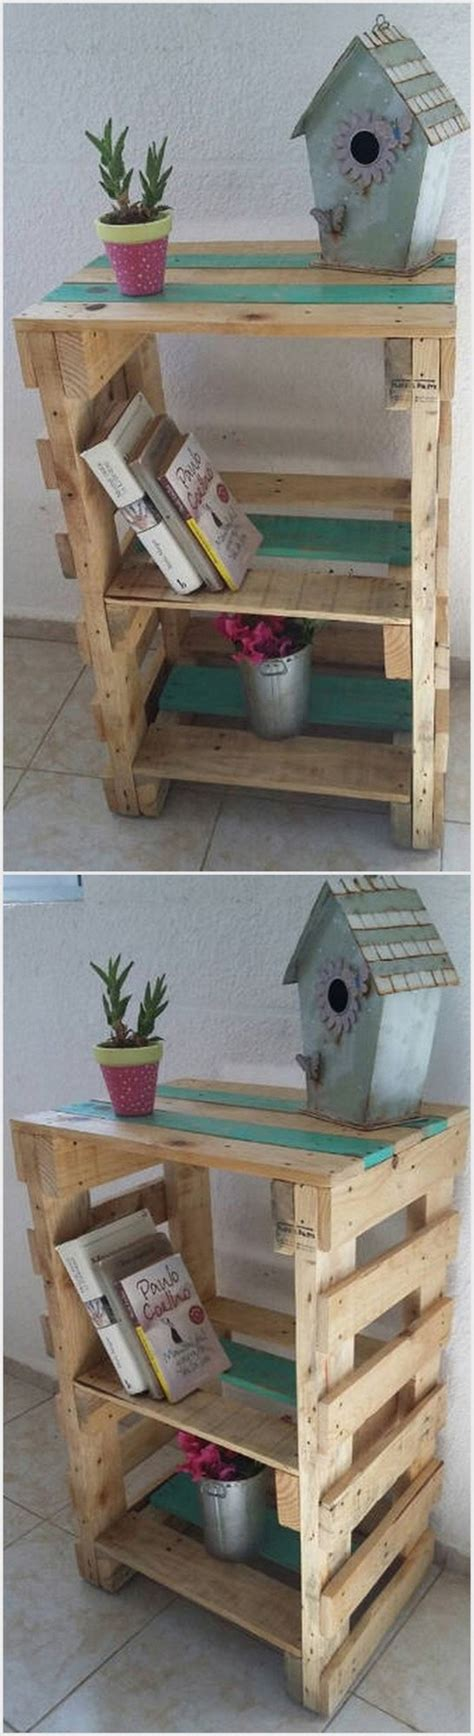 easy pallet projects affordable and easy wood pallet projects pallet wood projects